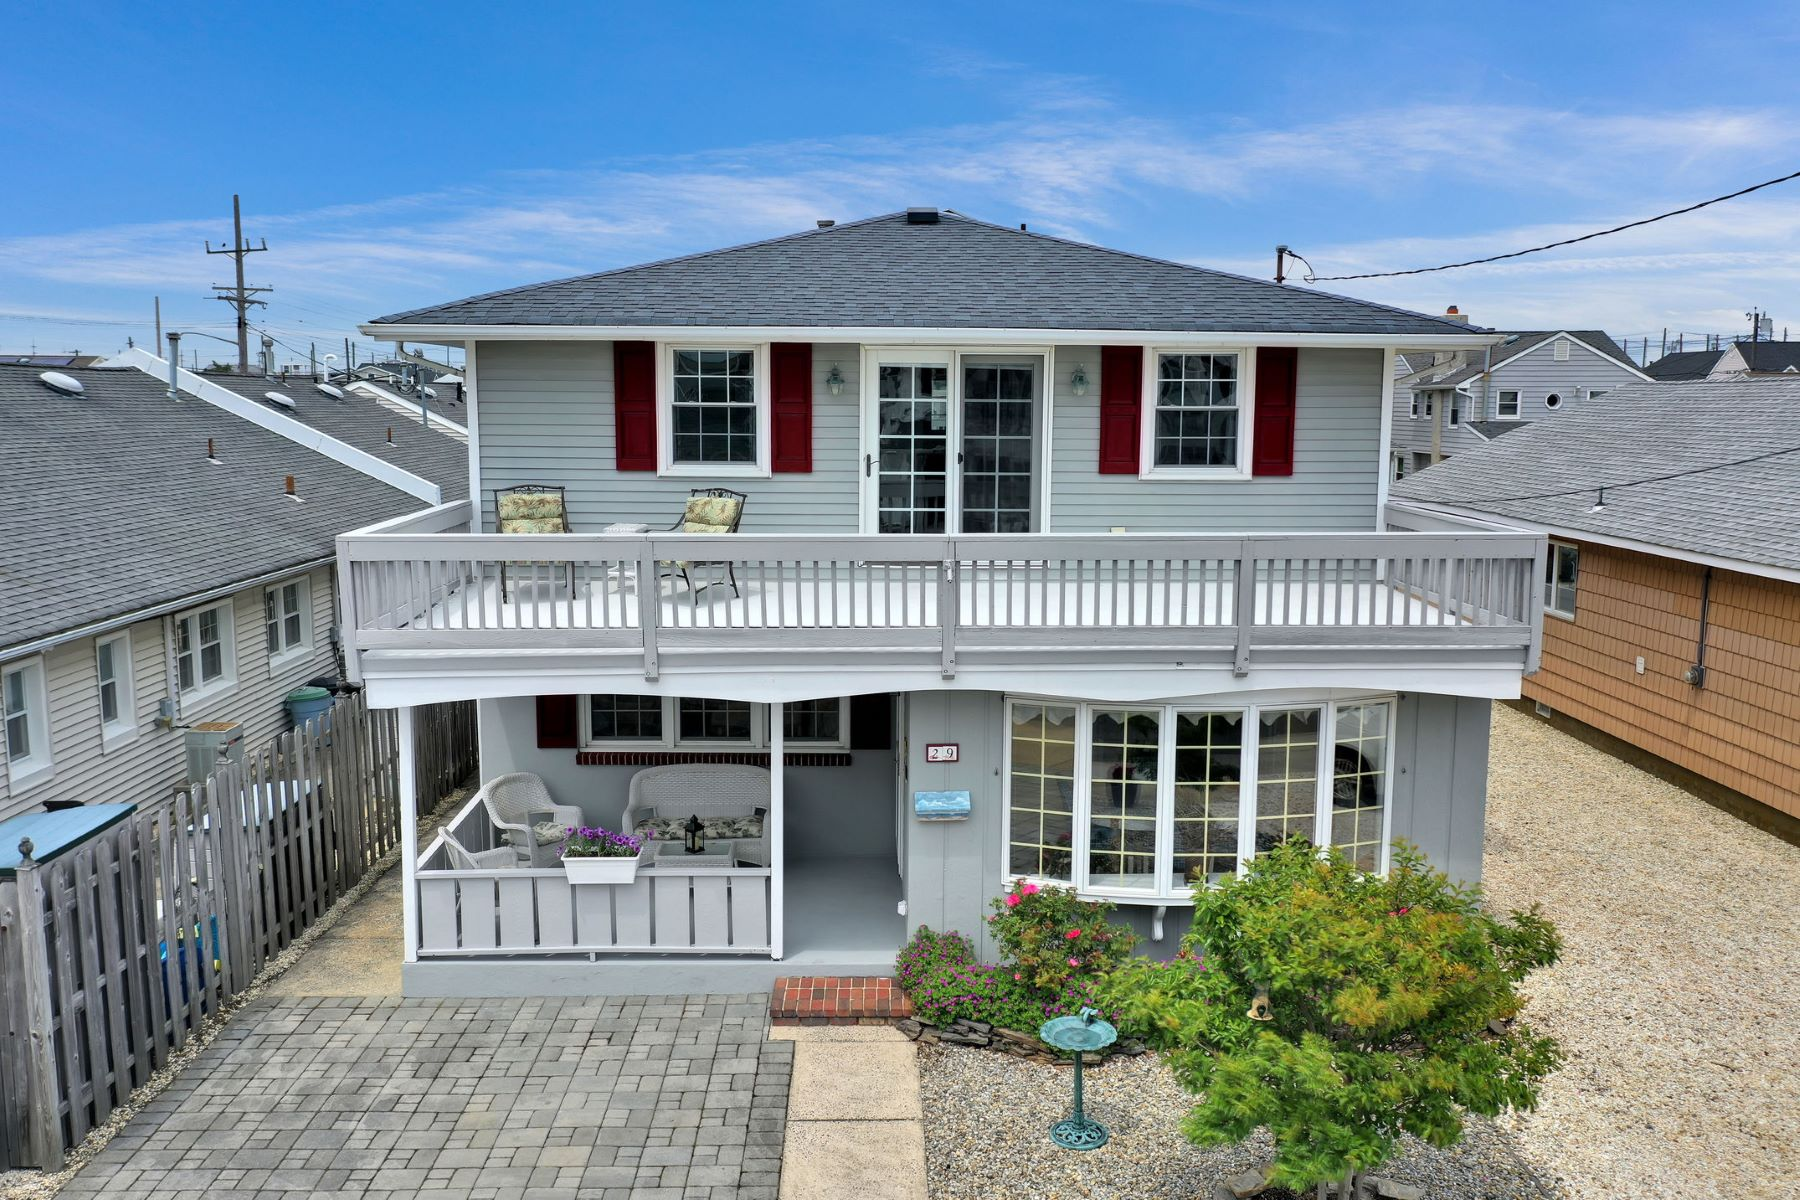 Single Family Homes for Sale at Classic Beach Block Shore Colonial Home 29 Westmont Avenue, Lavallette, New Jersey 08735 United States